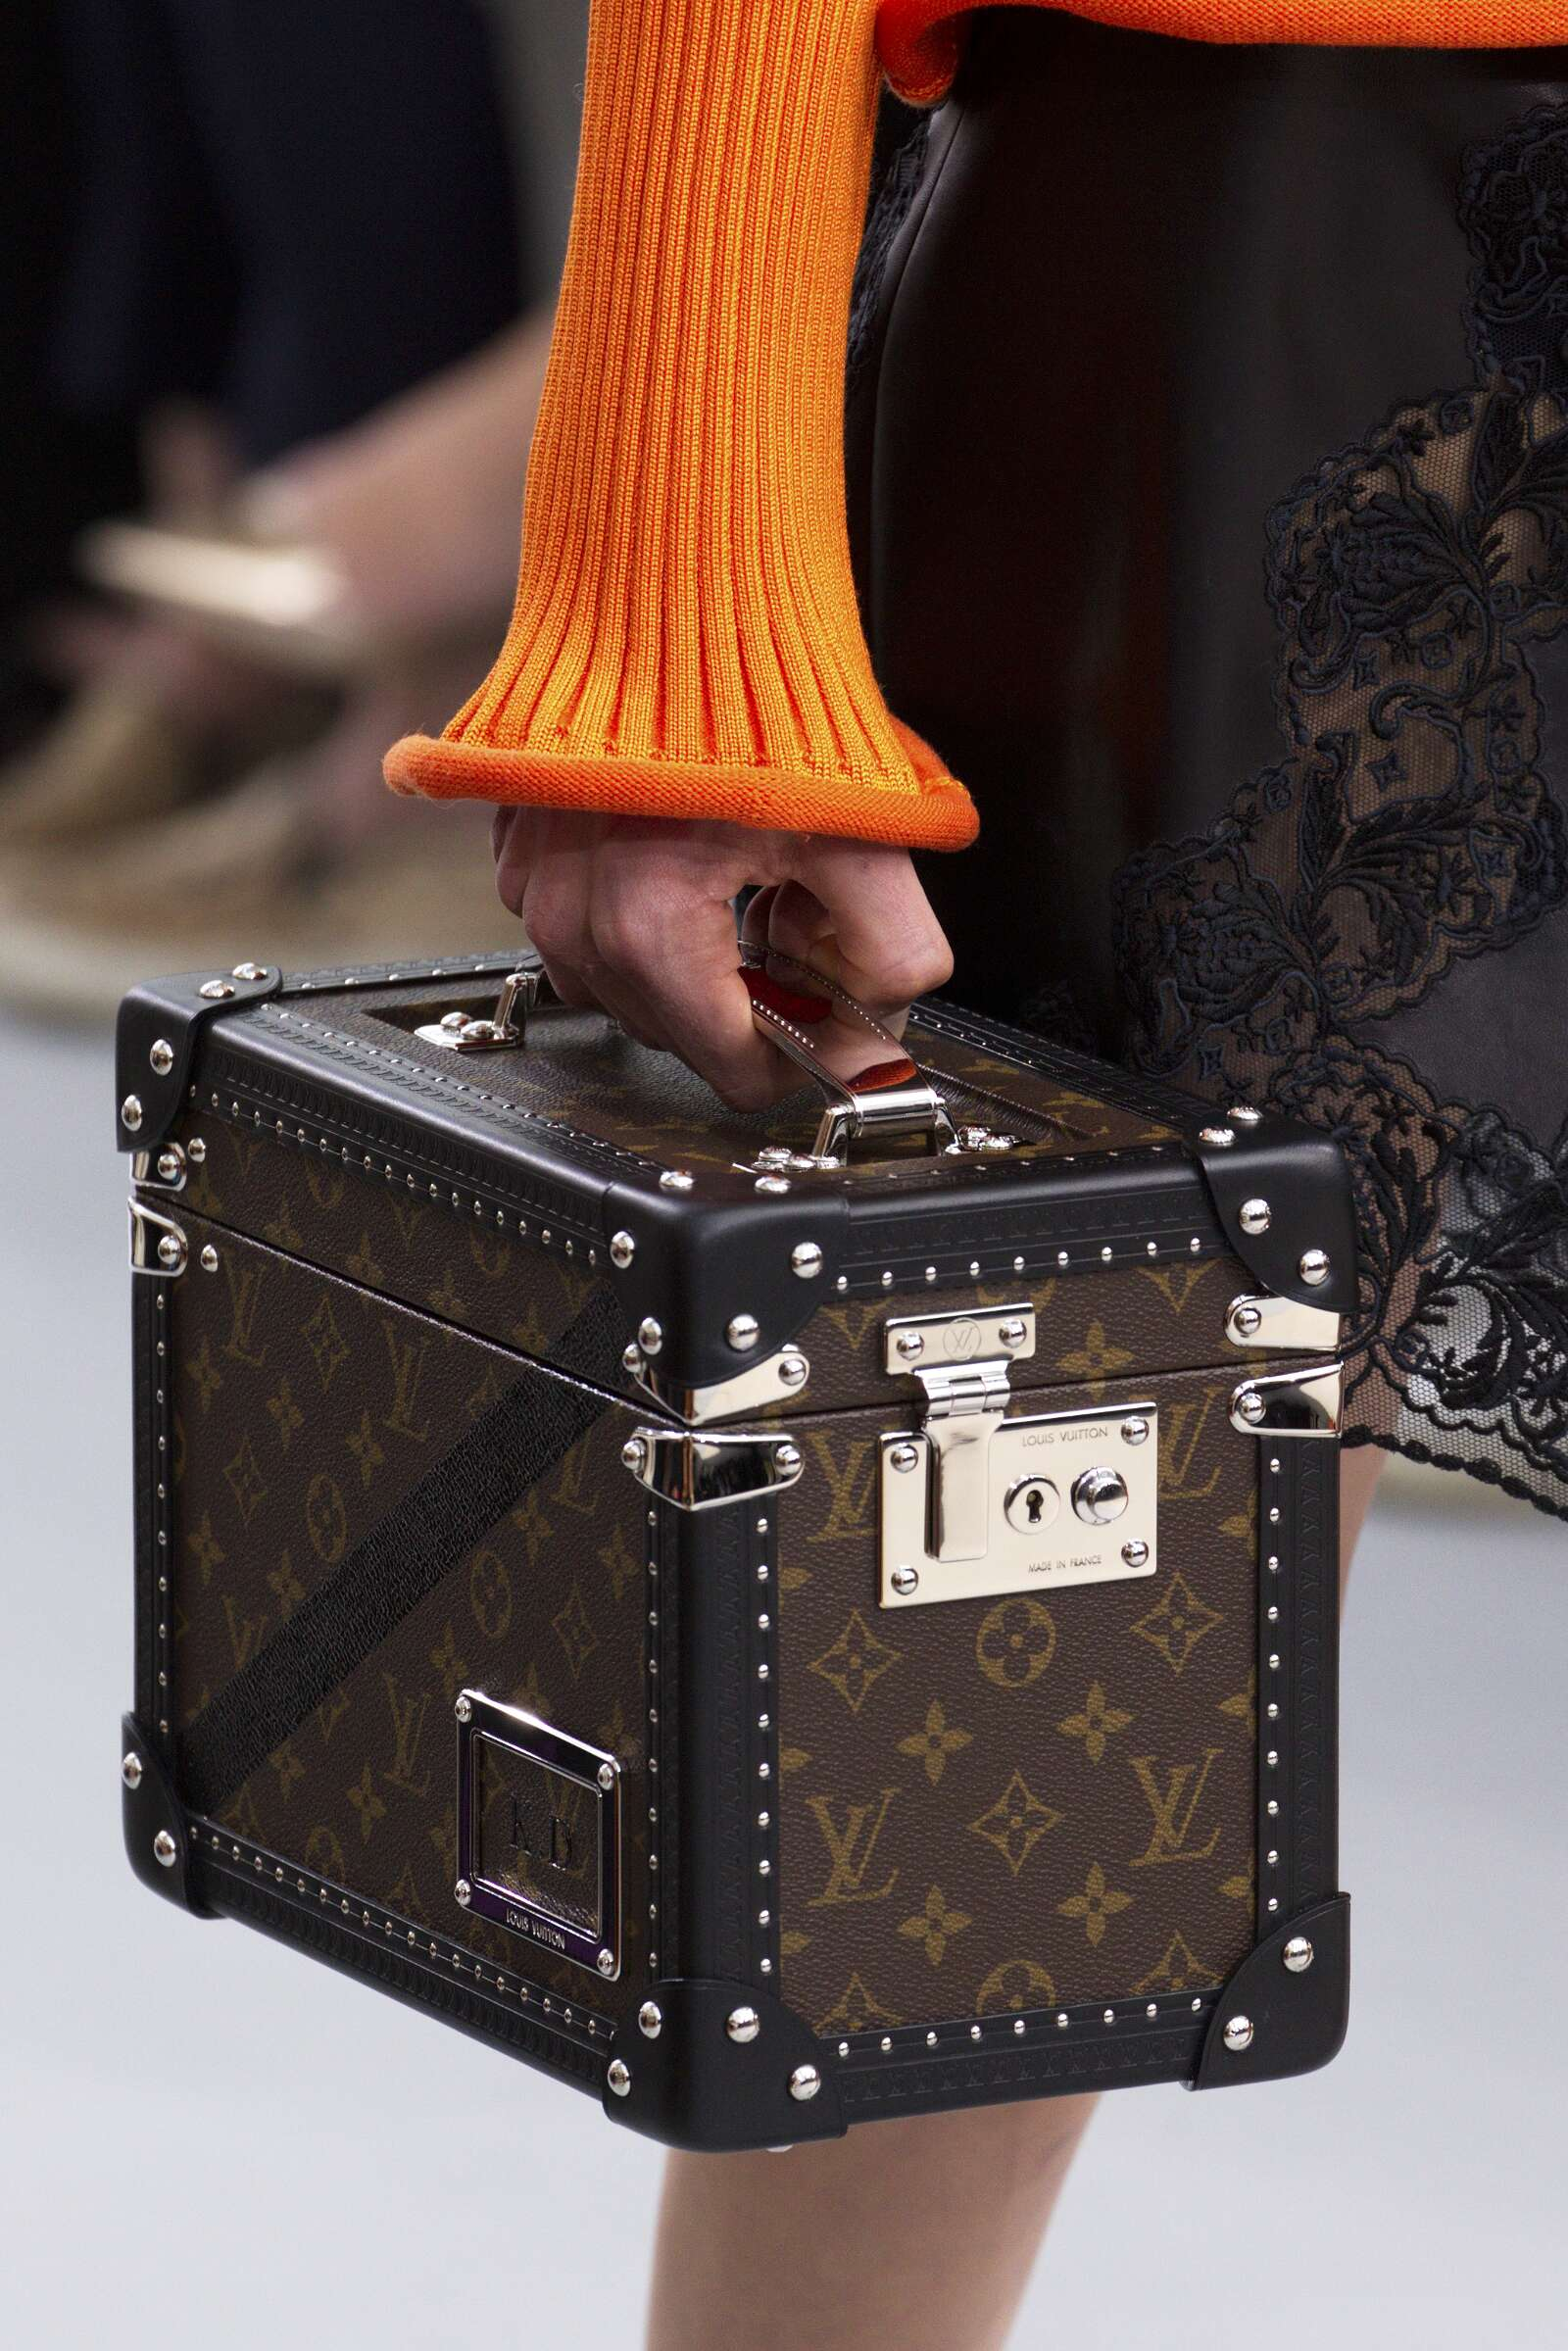 Fall Louis Vuitton Bag Details Collection Fashion Women Model